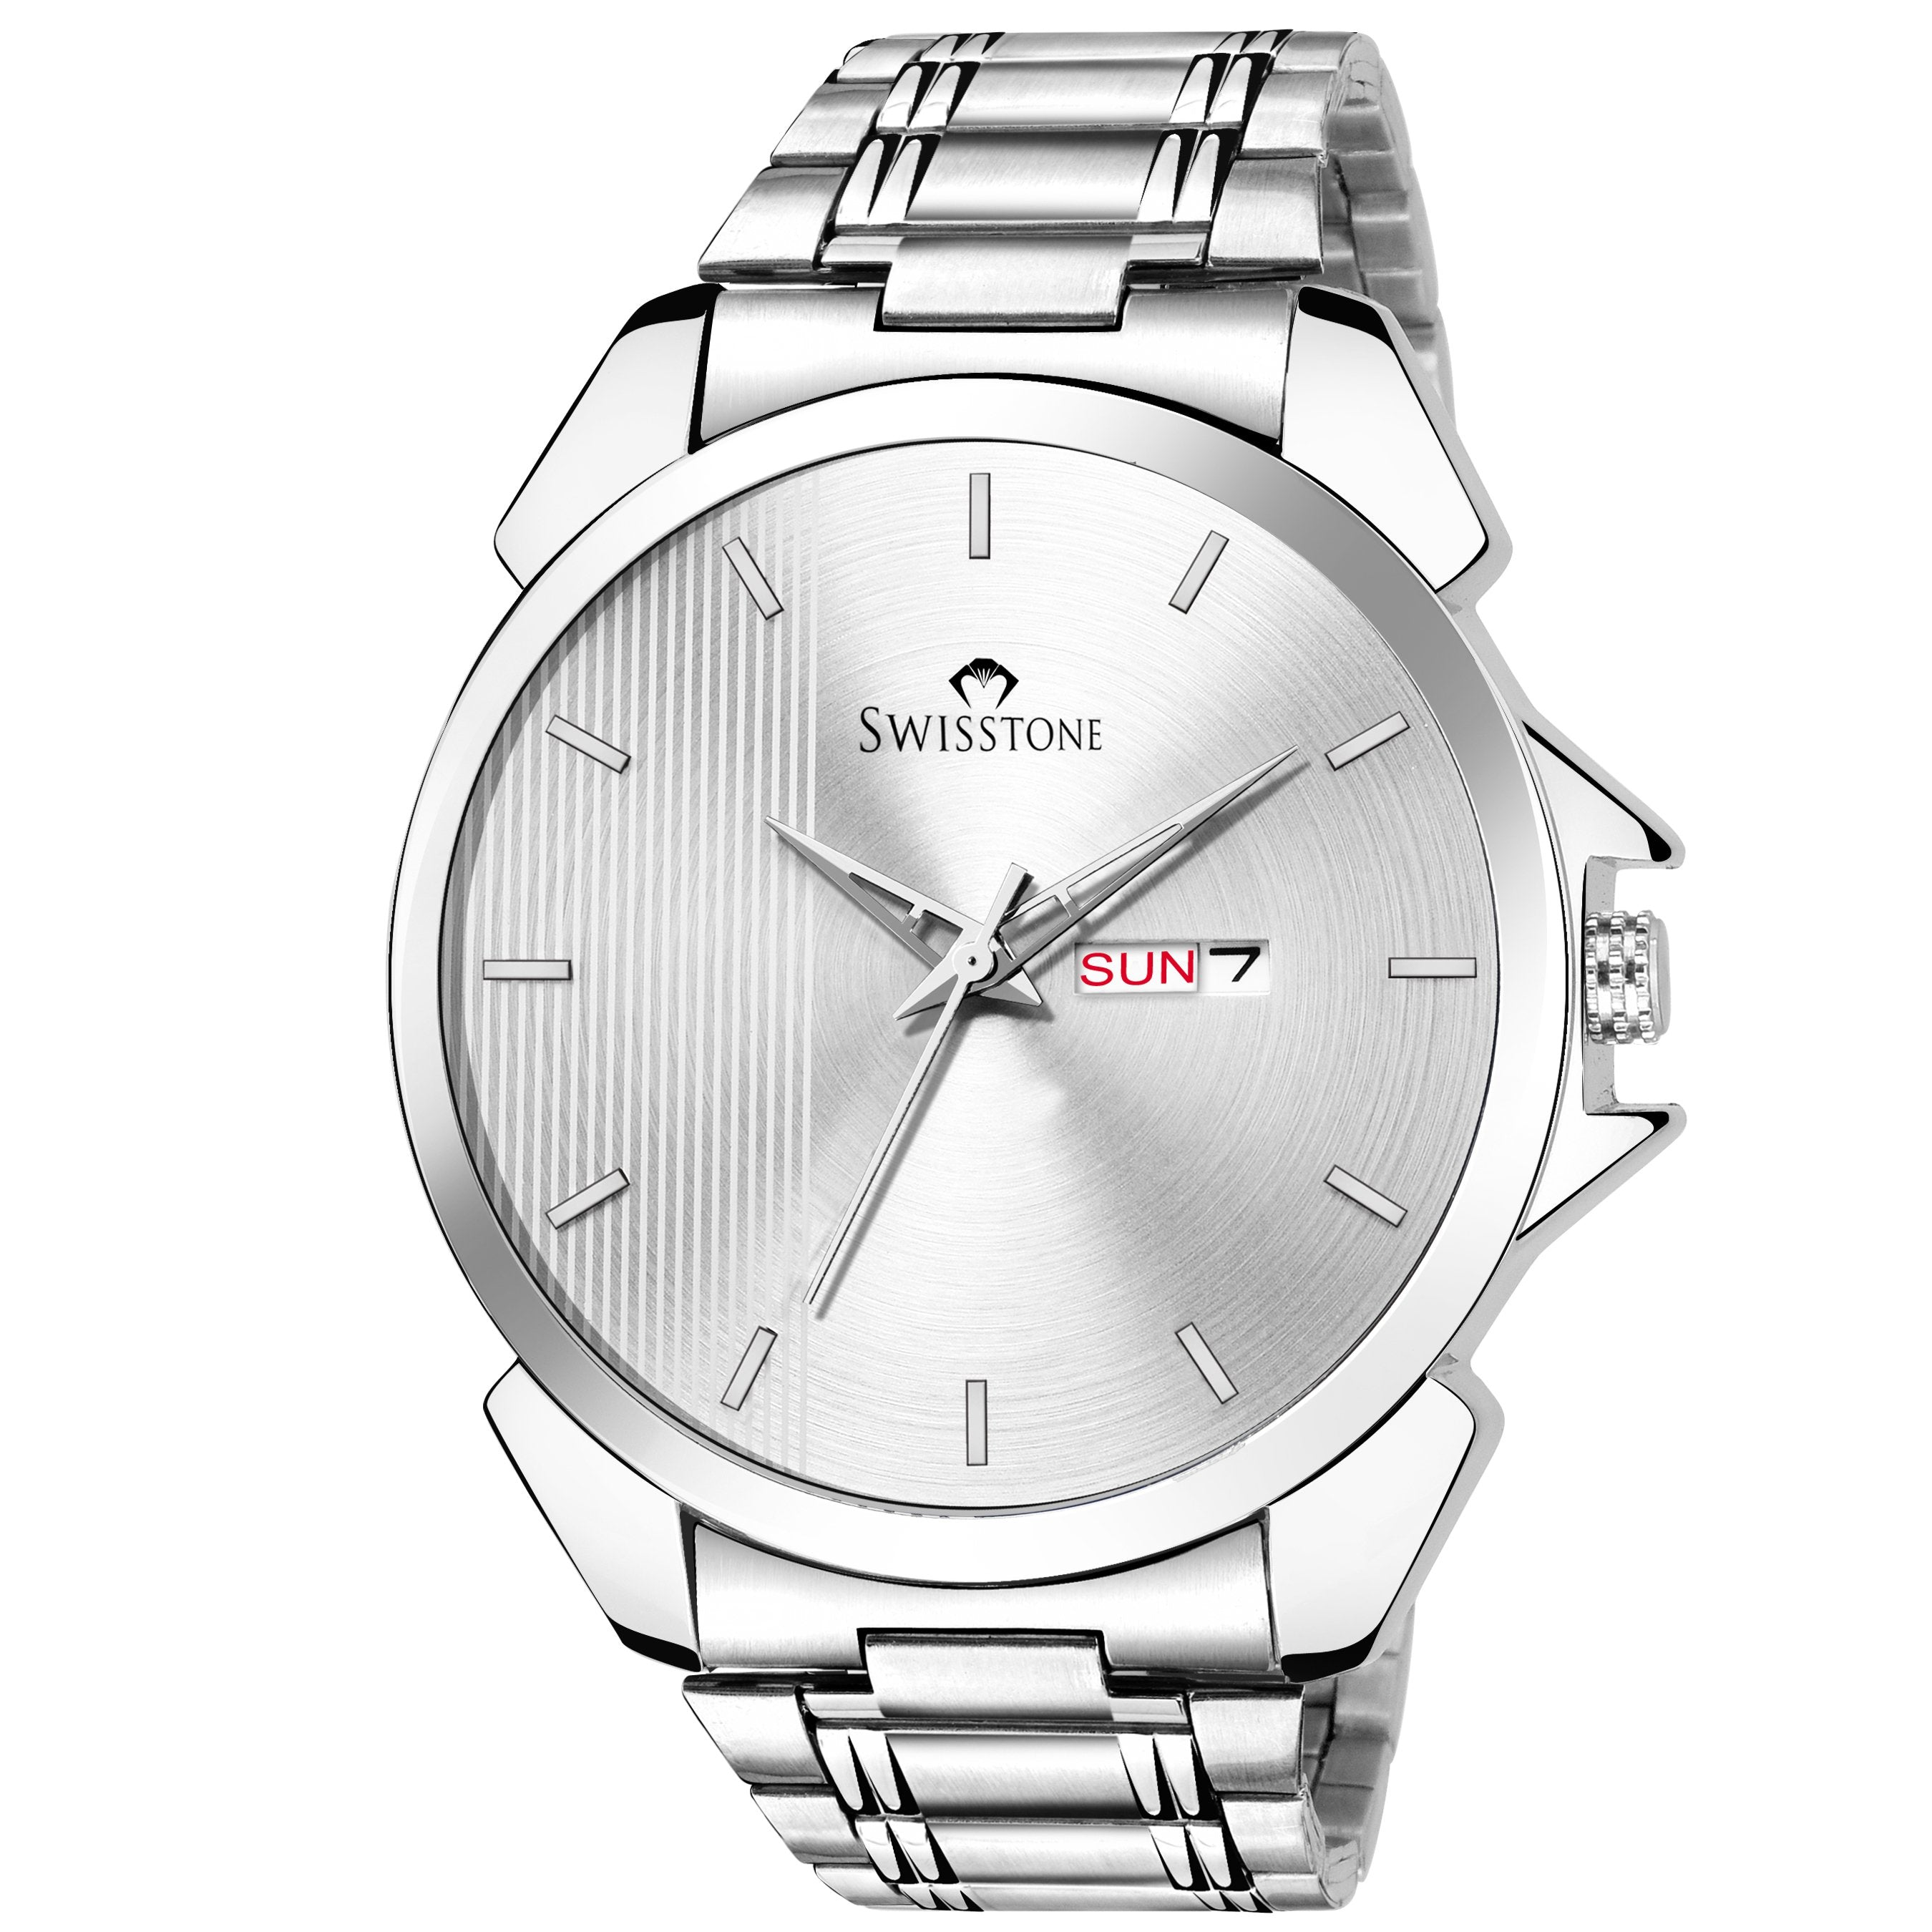 SWISSTONE SW480-SLV-CH Wrist Watch for Men